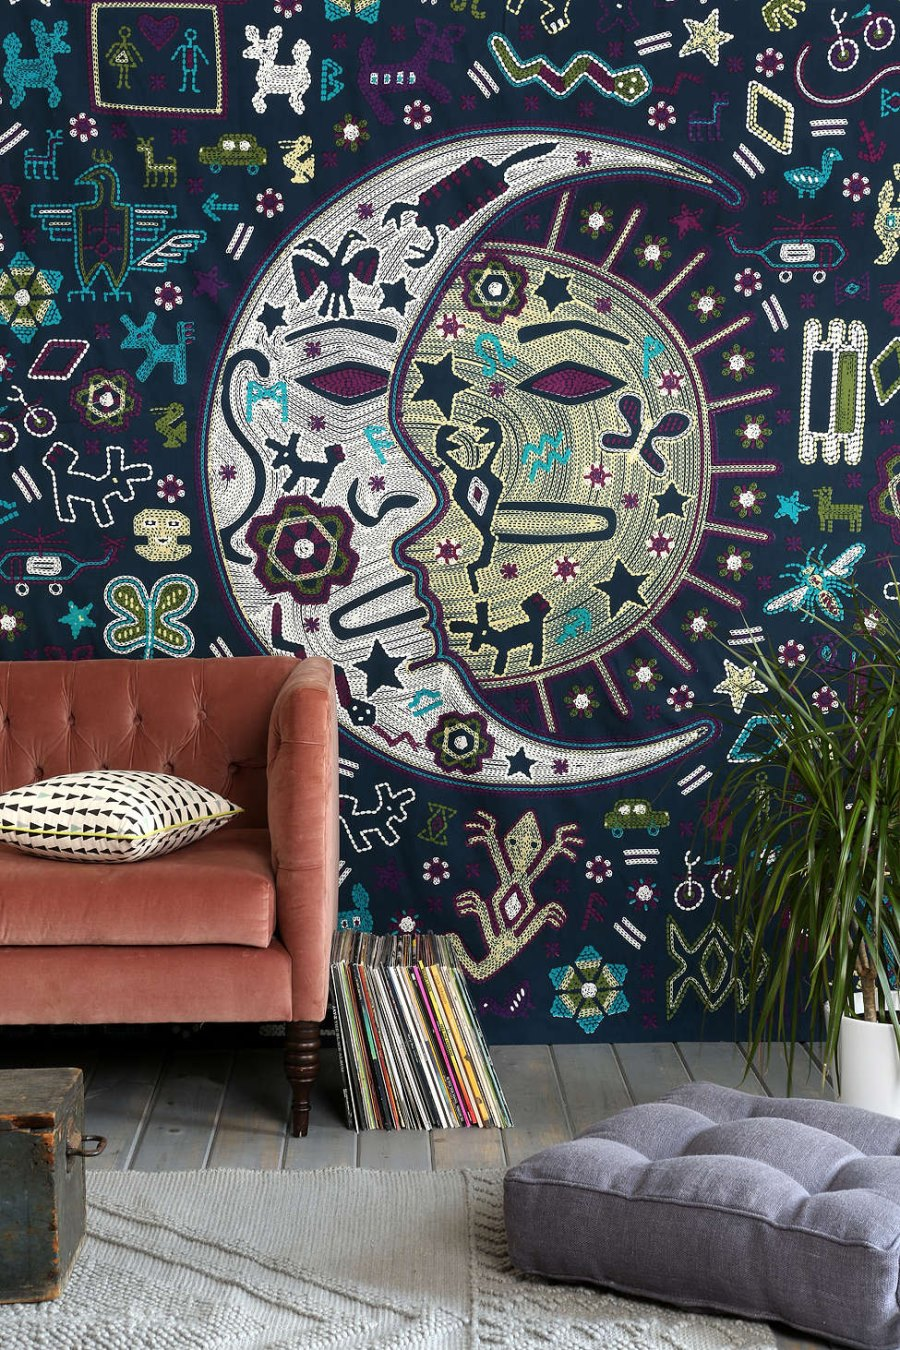 Sun and moon tapestry from Urban Outfitters